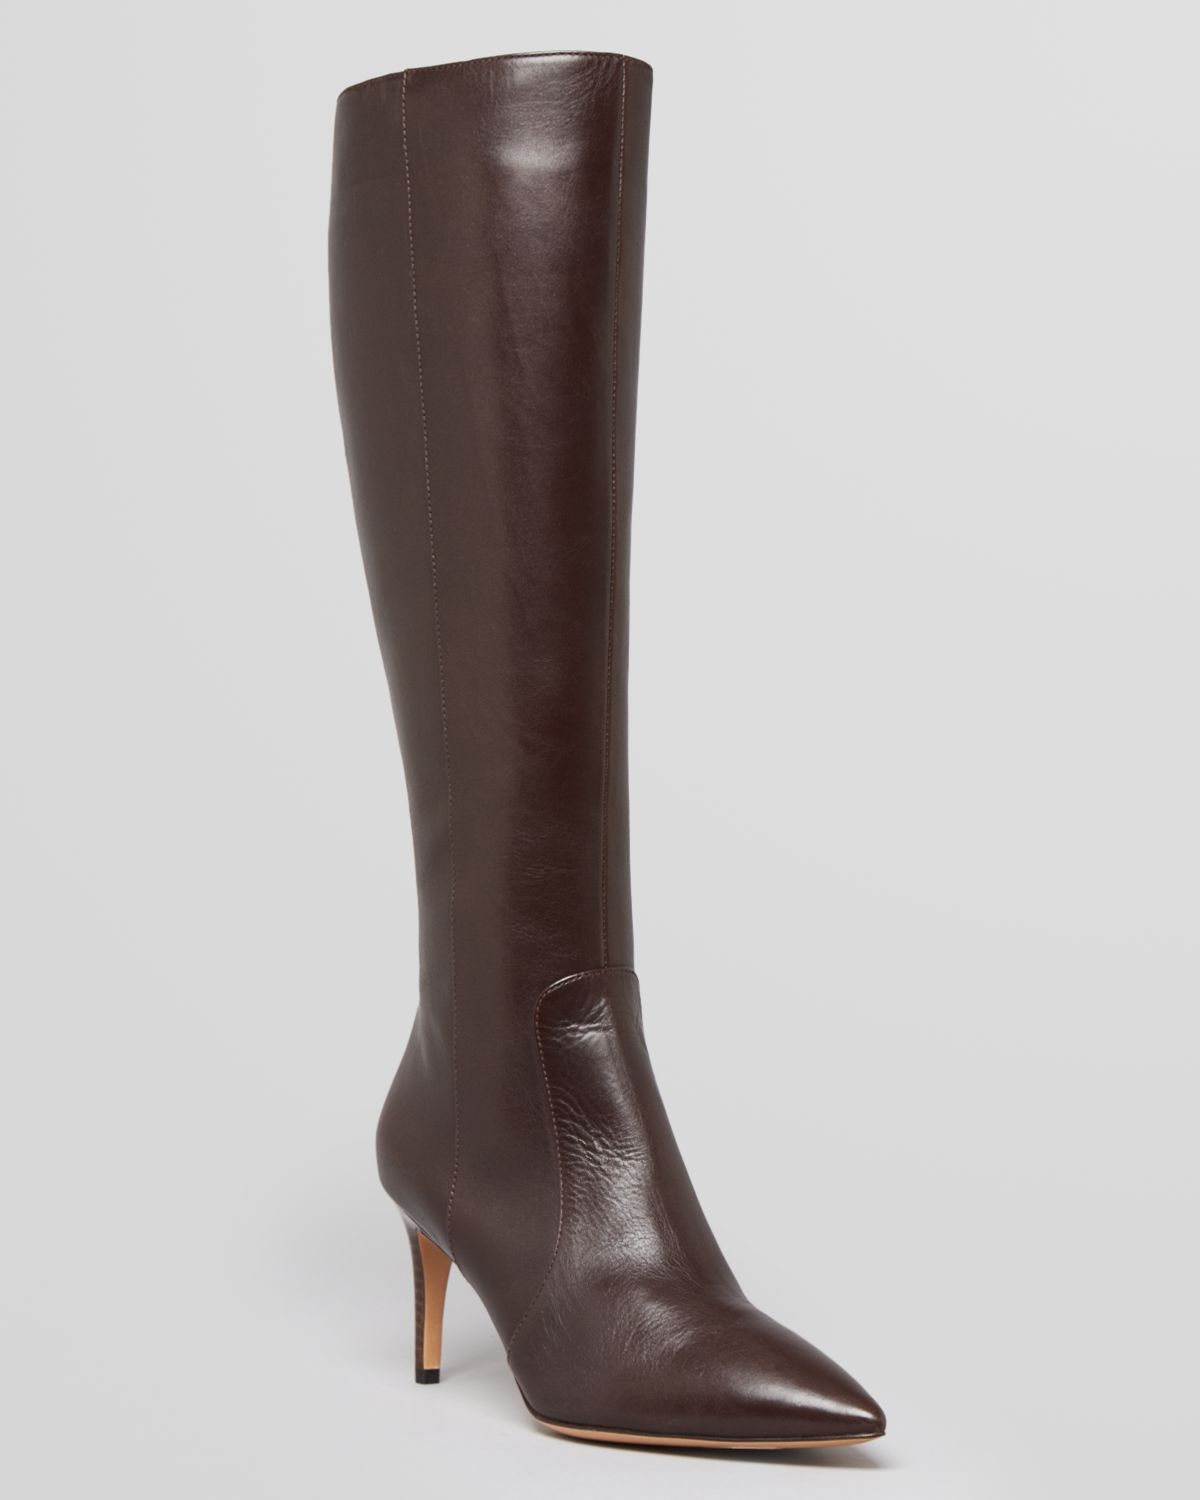 via spiga pointed toe dress boots dacia high heel in